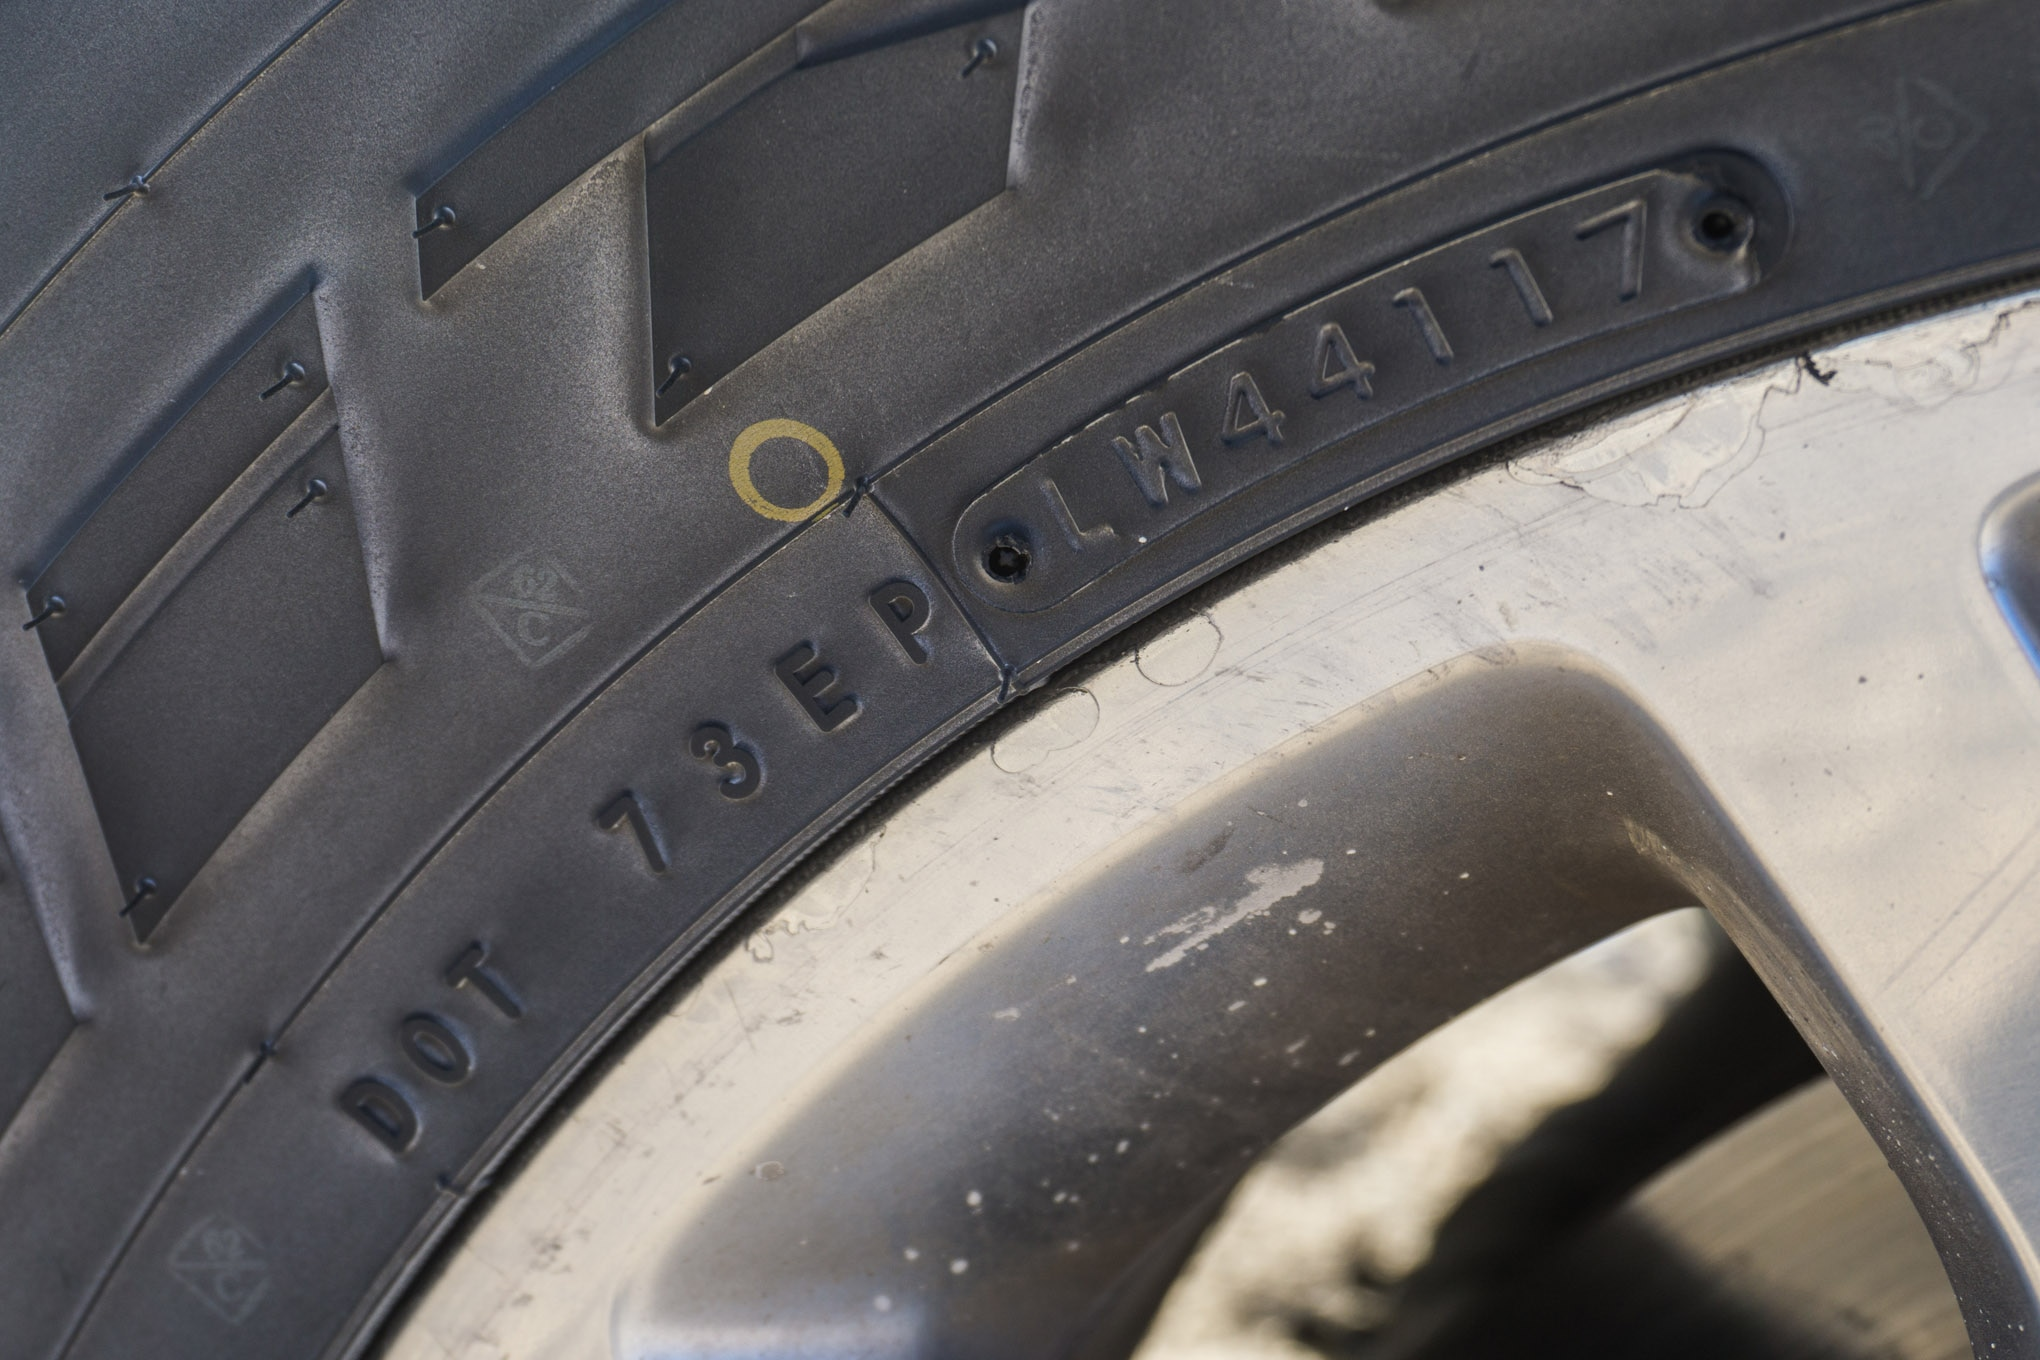 """Shopping for used tires? You will want to look at the last four numbers of the DOT code to determine just how old the tires are. Even if they have full tread, an older tire, particularly one that has spent a lot of time in direct sunlight, can be compromised. """"4117"""" is the month and year that this tire was manufactured. So this tire was made in the 41st week of 2017."""